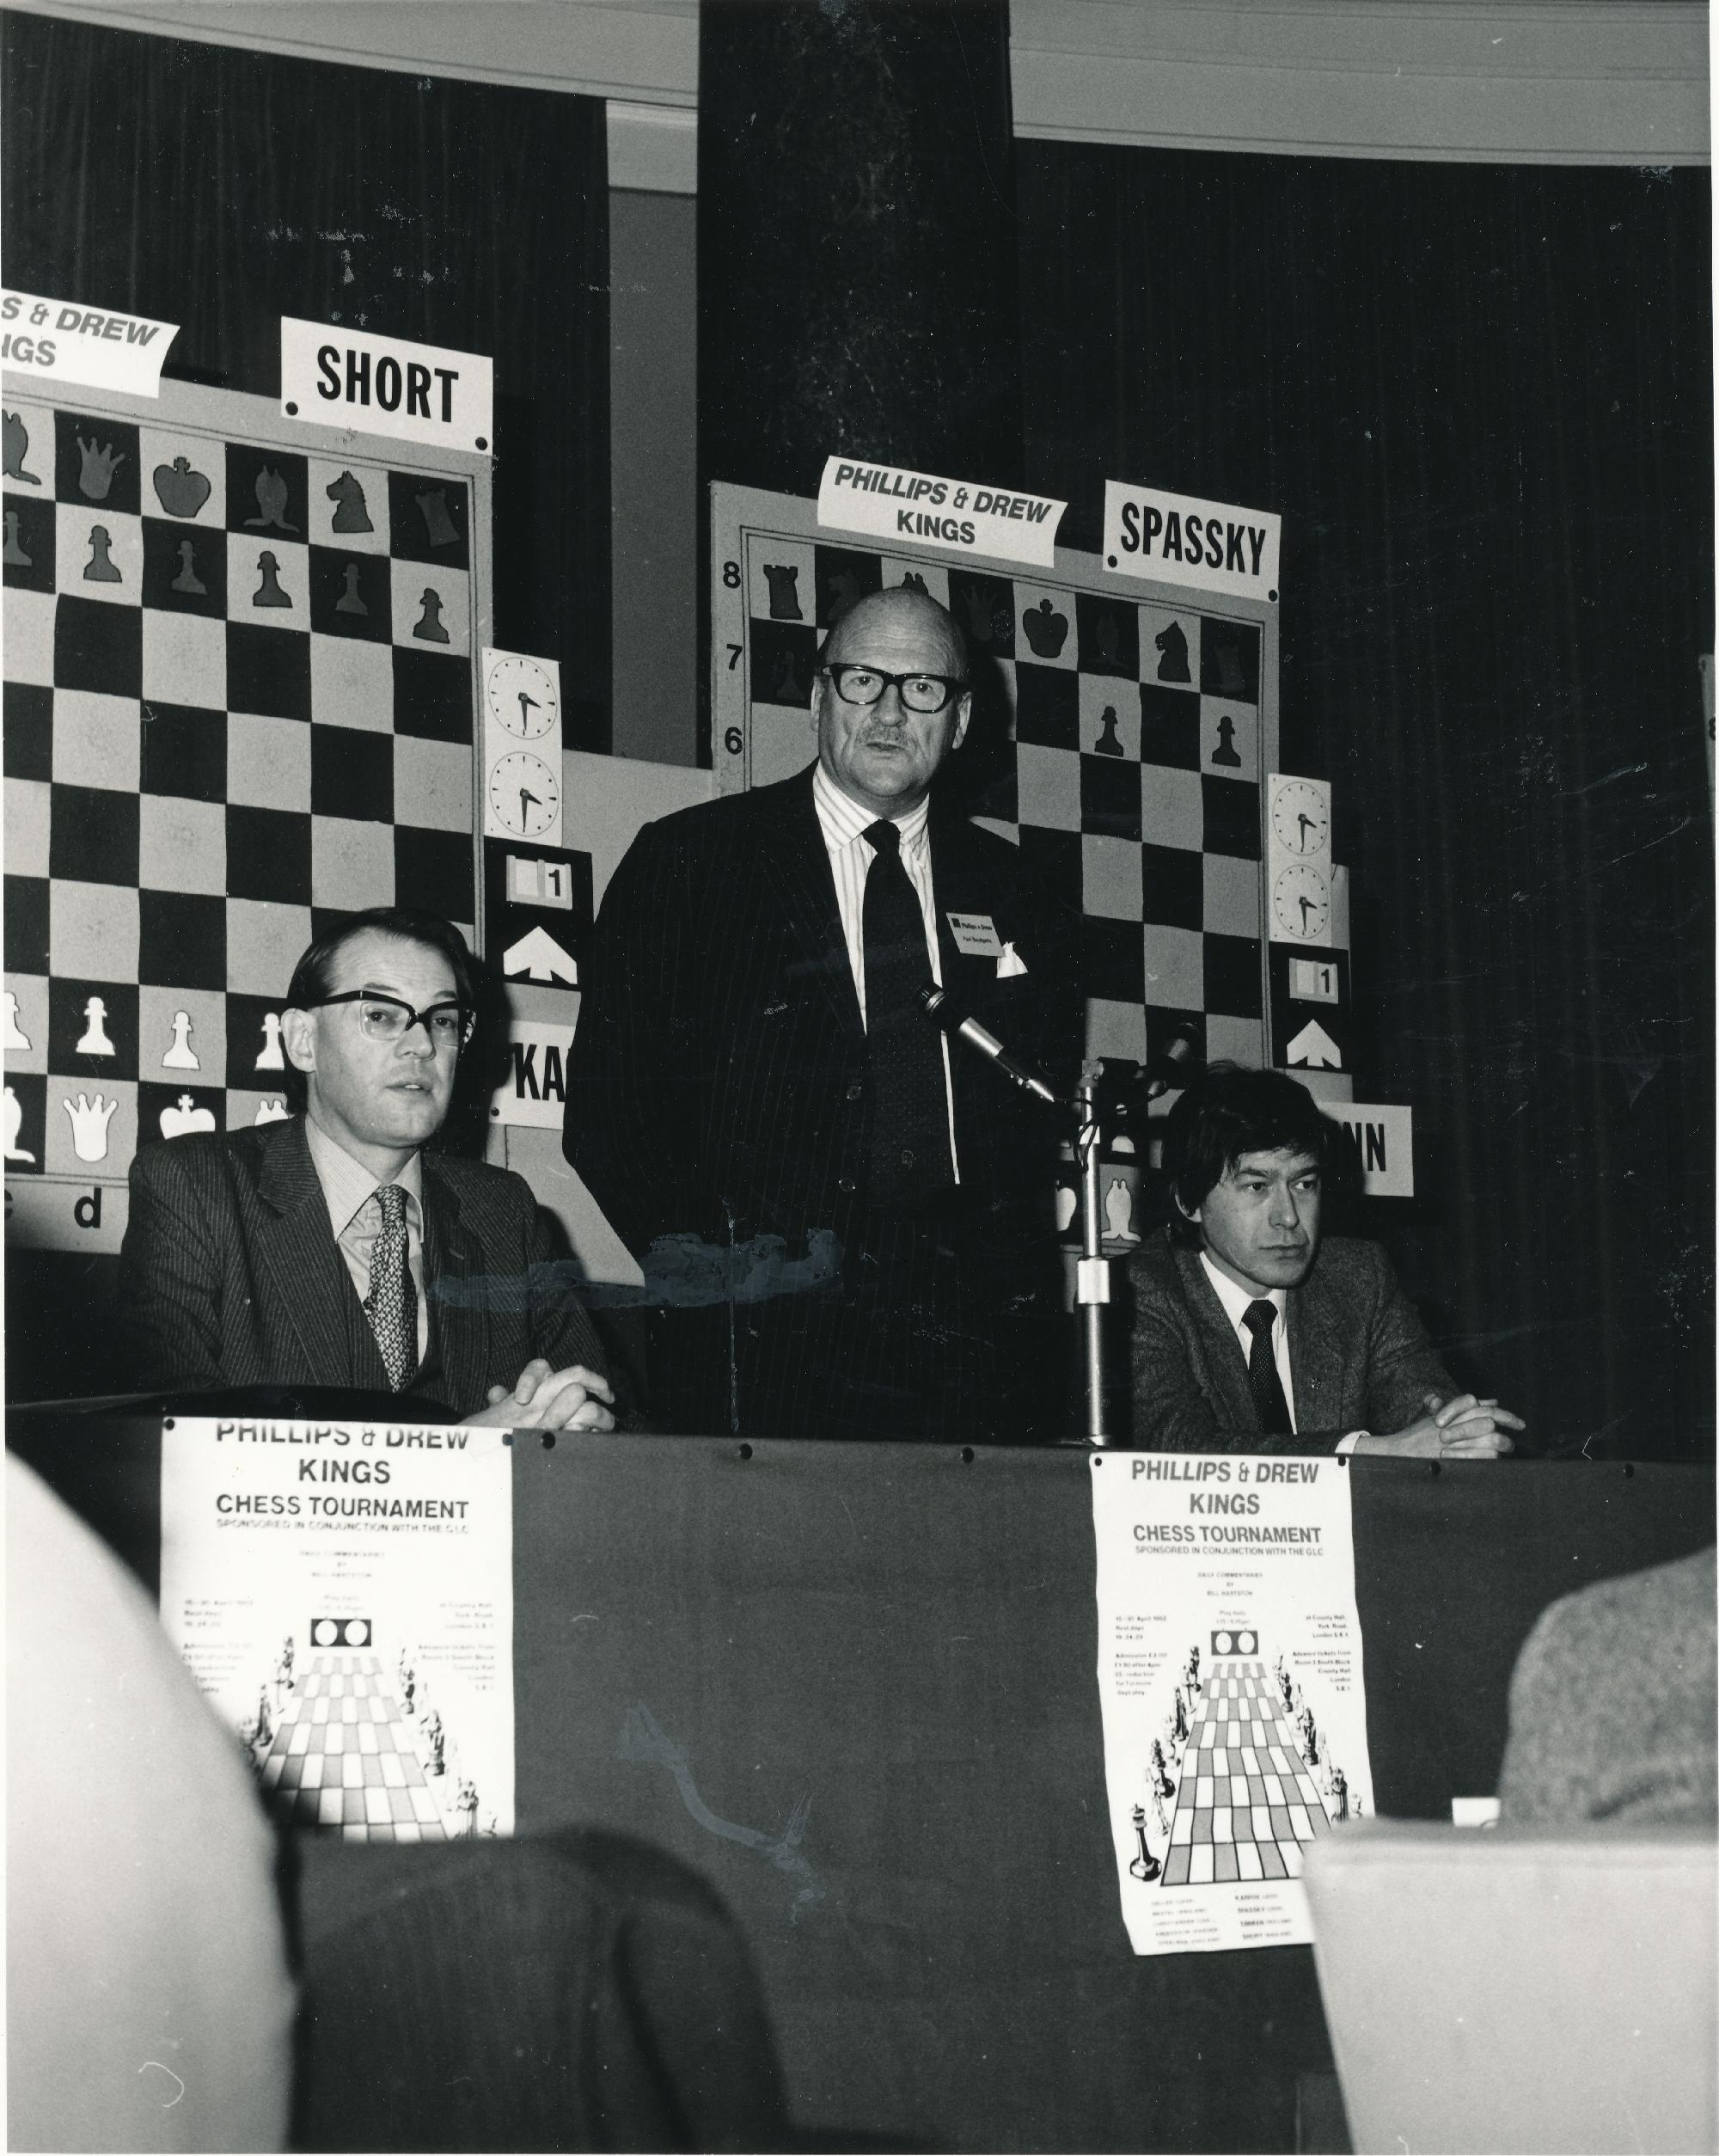 David Anderton OBE, Paul Bazalgette (Senior Partner at Philips & Drew)  and Tony Banks (GLC Arts & Recreation Department) at the 1982 Philips and Drew Kings Tournament Opening Ceremony. Photograph by Clive Field